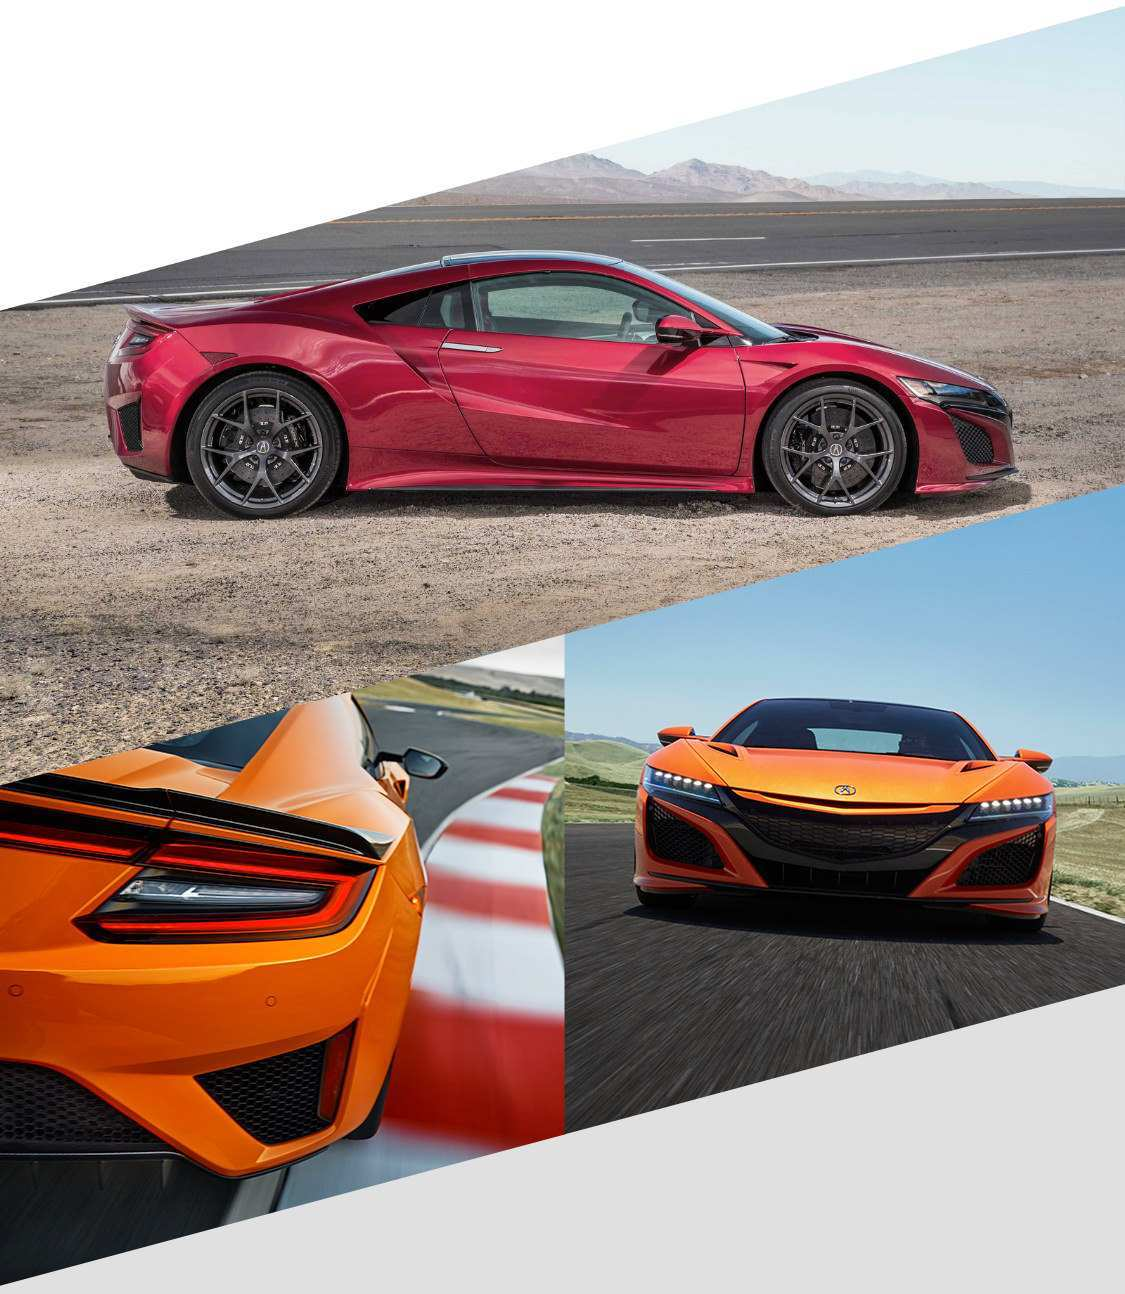 78 New 2019 Acura Nsx Horsepower Release Date And Concept